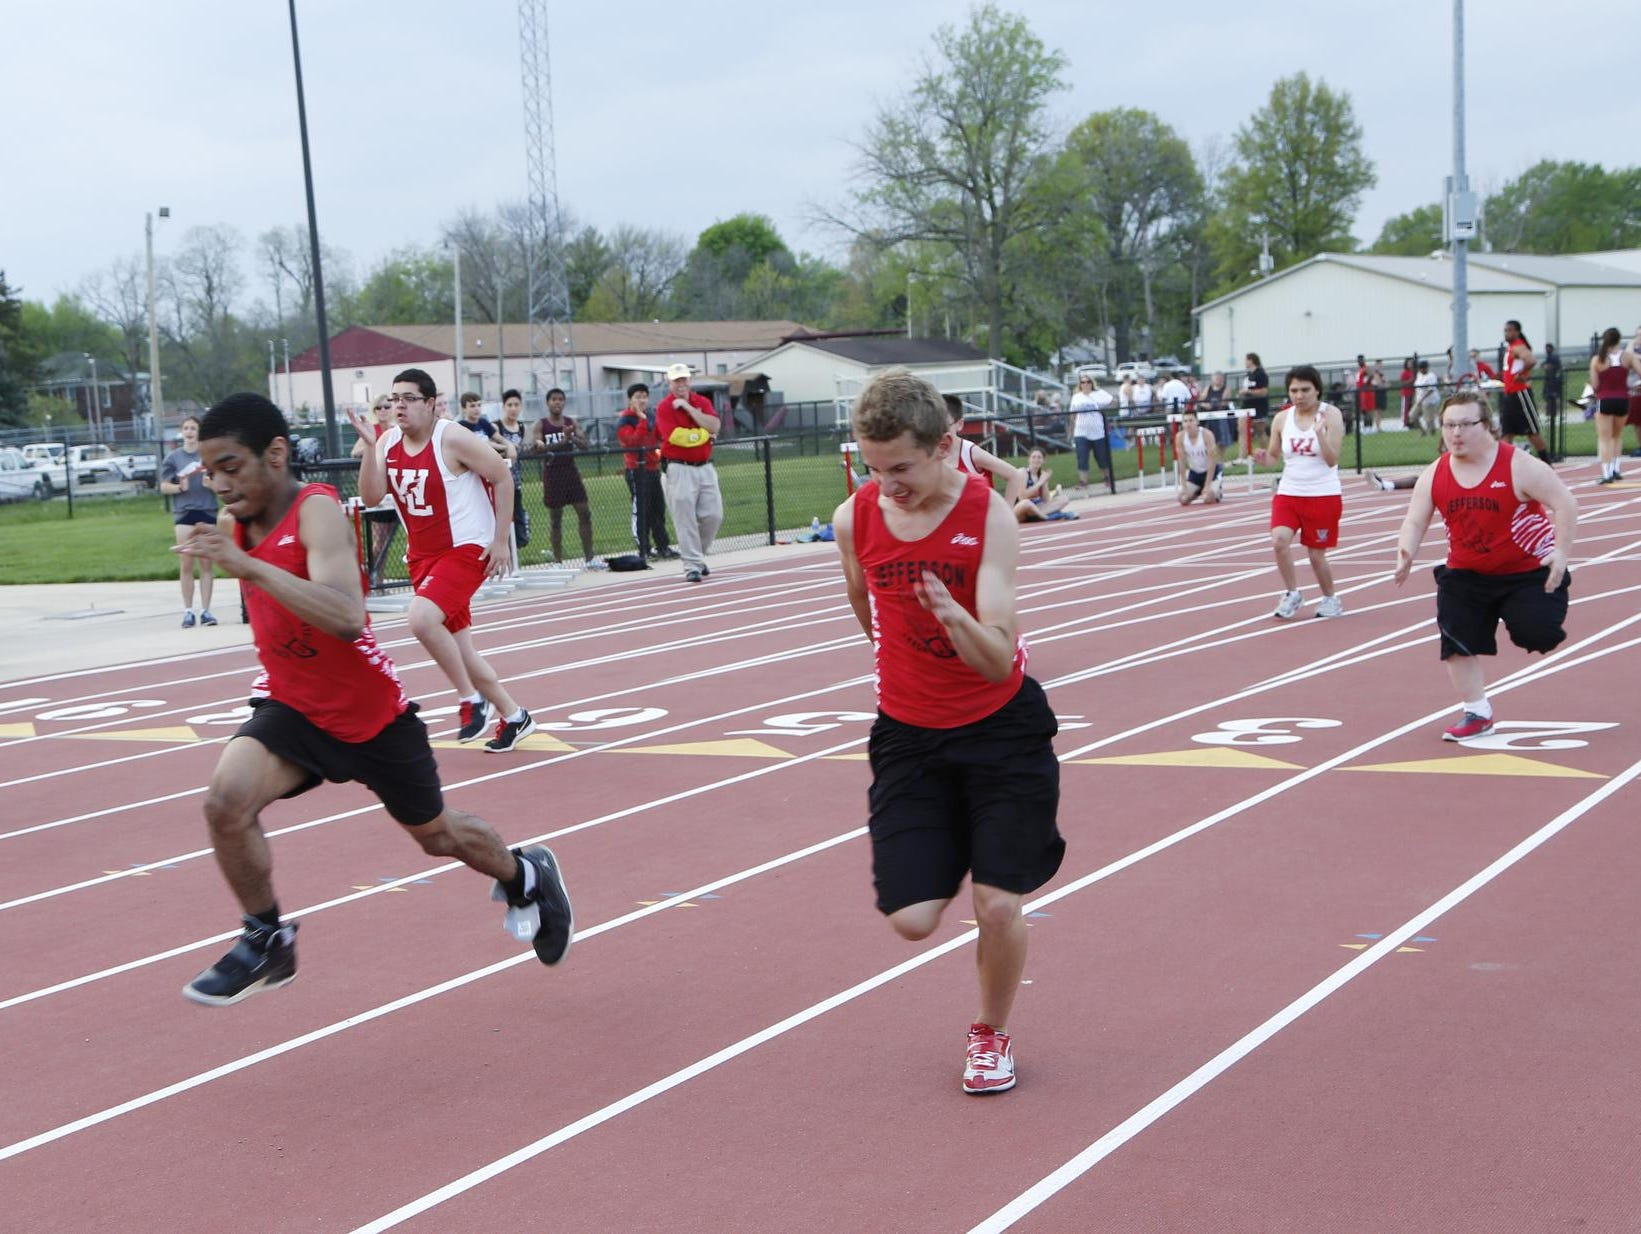 Unified teams from Lafayette Jeff and West Lafayette compete in the first heat of the 100 meter dash during the City County Track Meet Tuesday, May 5, 2015, at Lafayette Jeff High School.